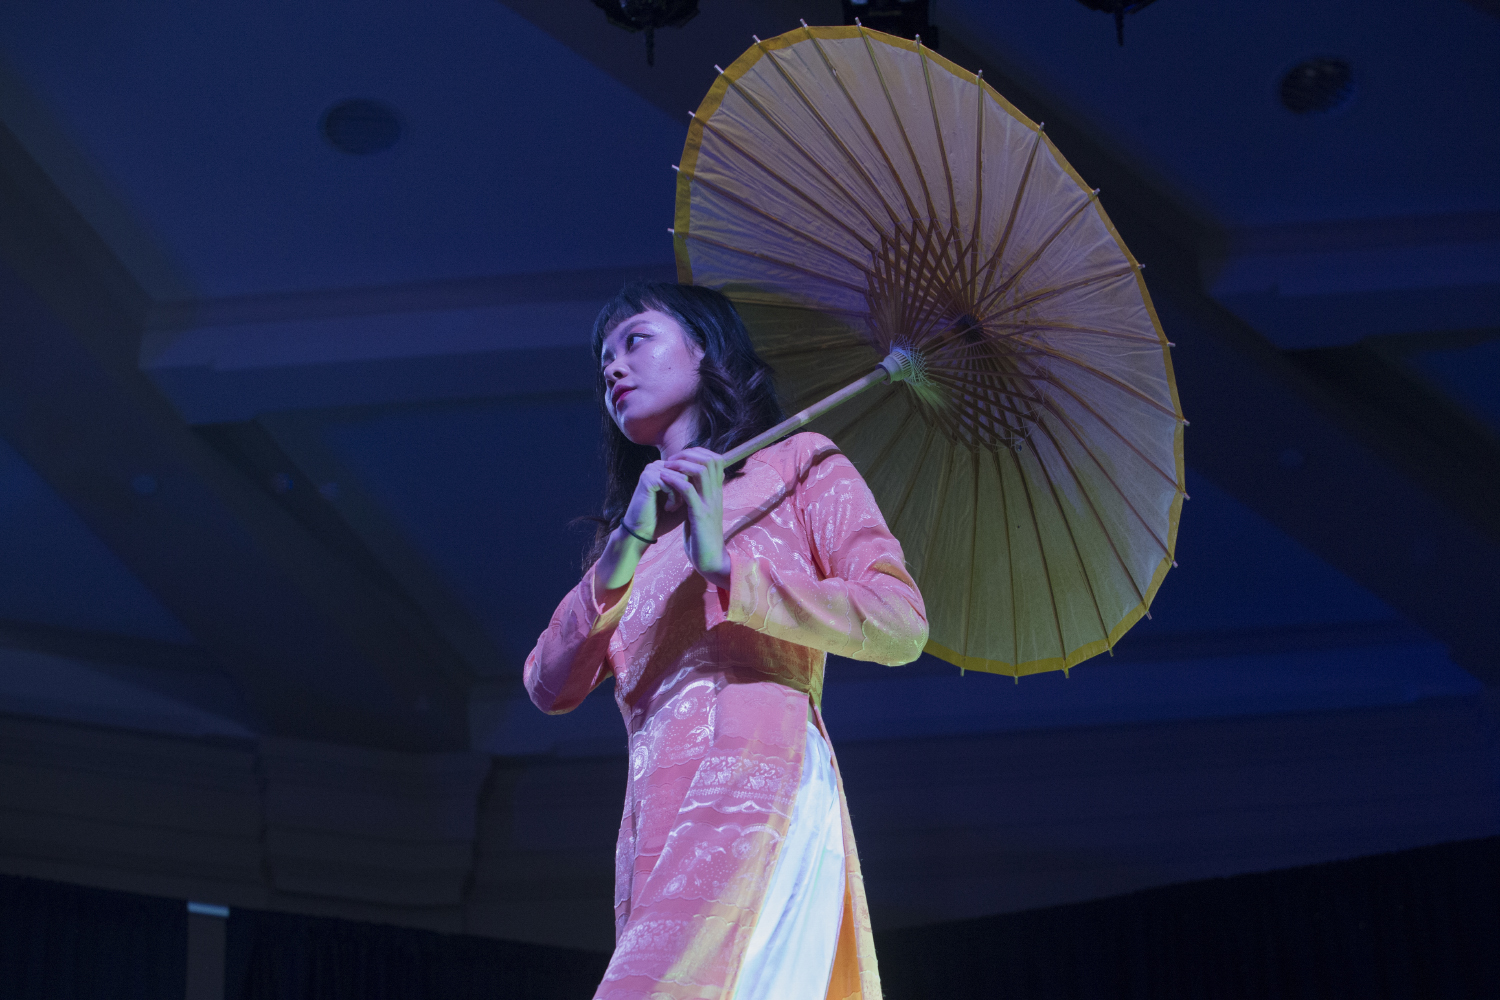 A University of Iowa student represents Southeast Asia during the Walk It Out Fashion Show at the IMU Main Lounge on Saturday, April 6, 2019. (Jenna Galligan/The Daily Iowan)